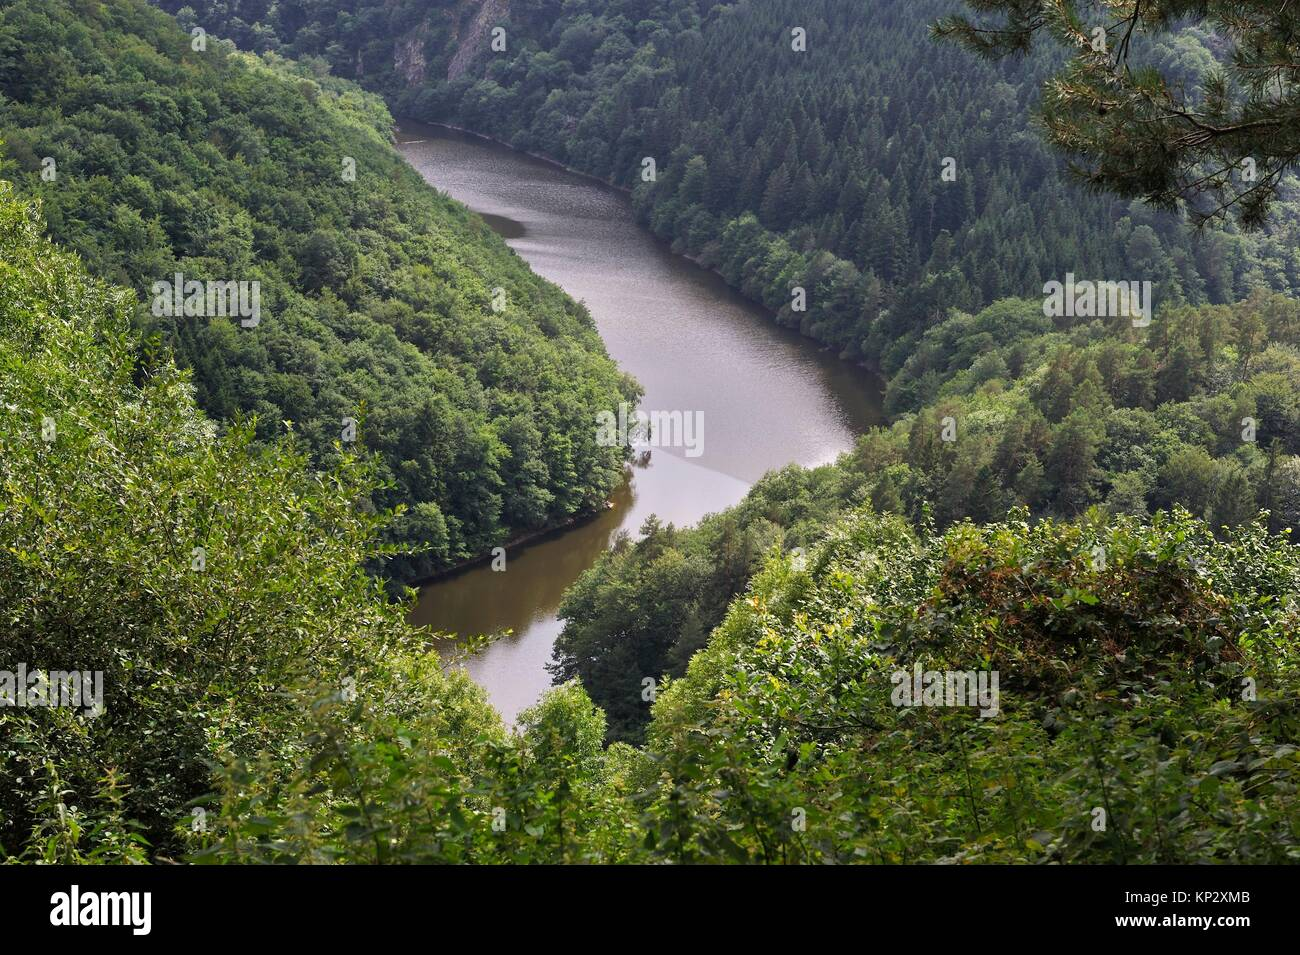 lake of Fades-Besserve bisected by the Sioule River, Puy-de-Dome department, Auvergne-Rhone-Alpes region, France, - Stock Image